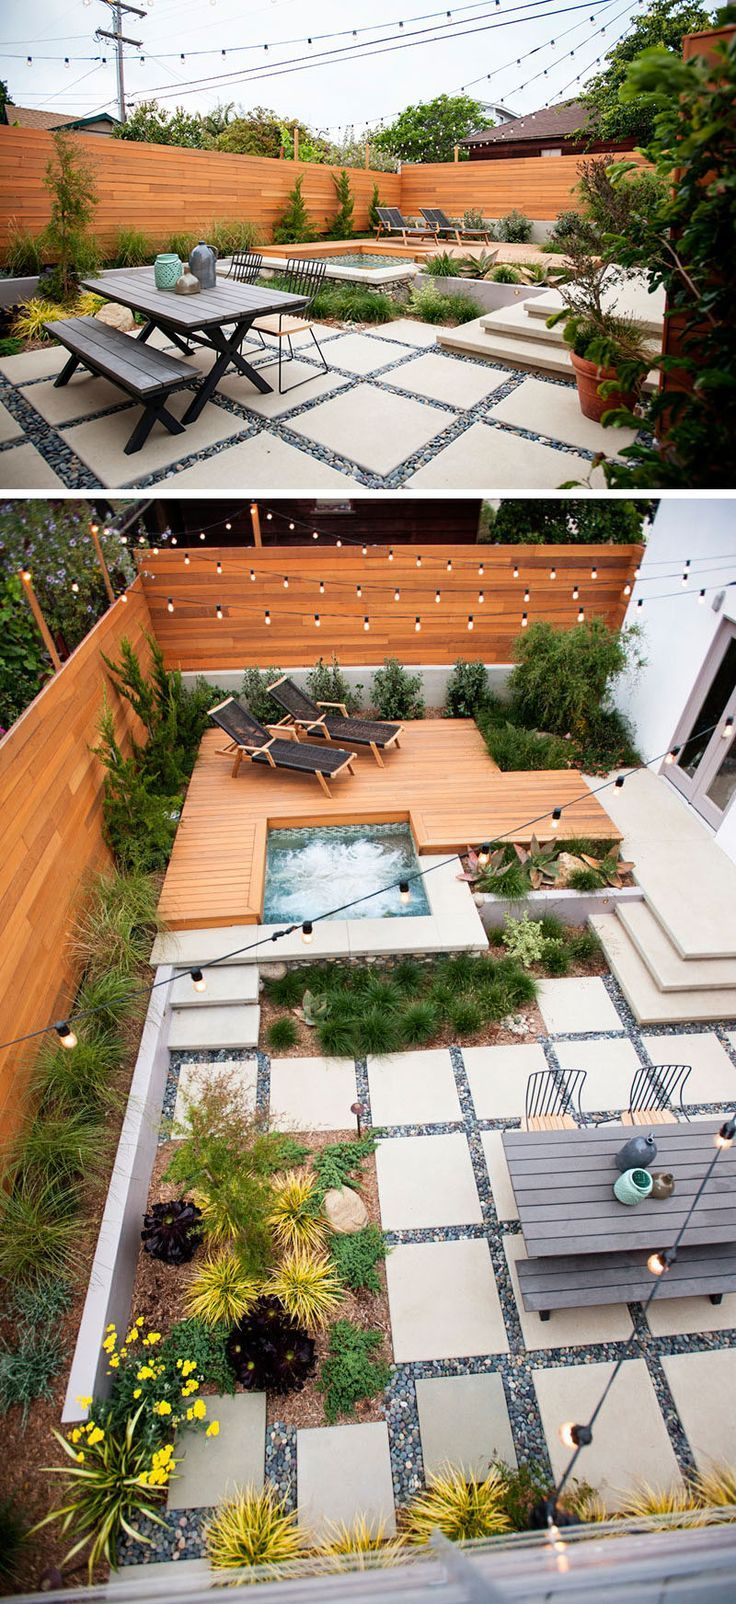 Landscaping Design Ideas 11 Backyards Designed For Entertaining with Backyard Stone Patio Design Ideas